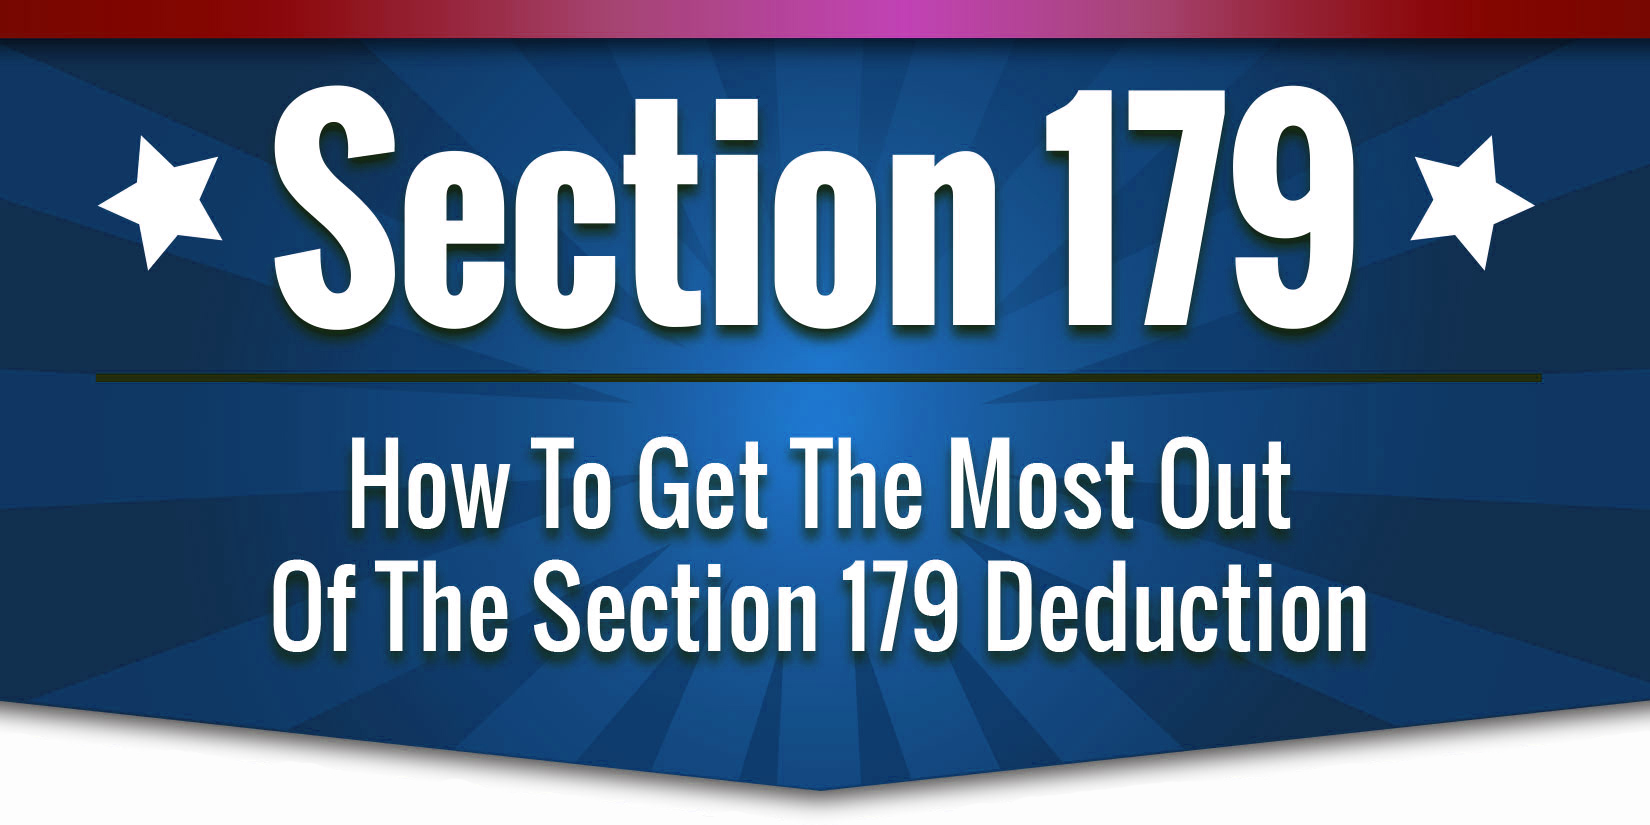 Take Advantage of the Section 179 Deduction